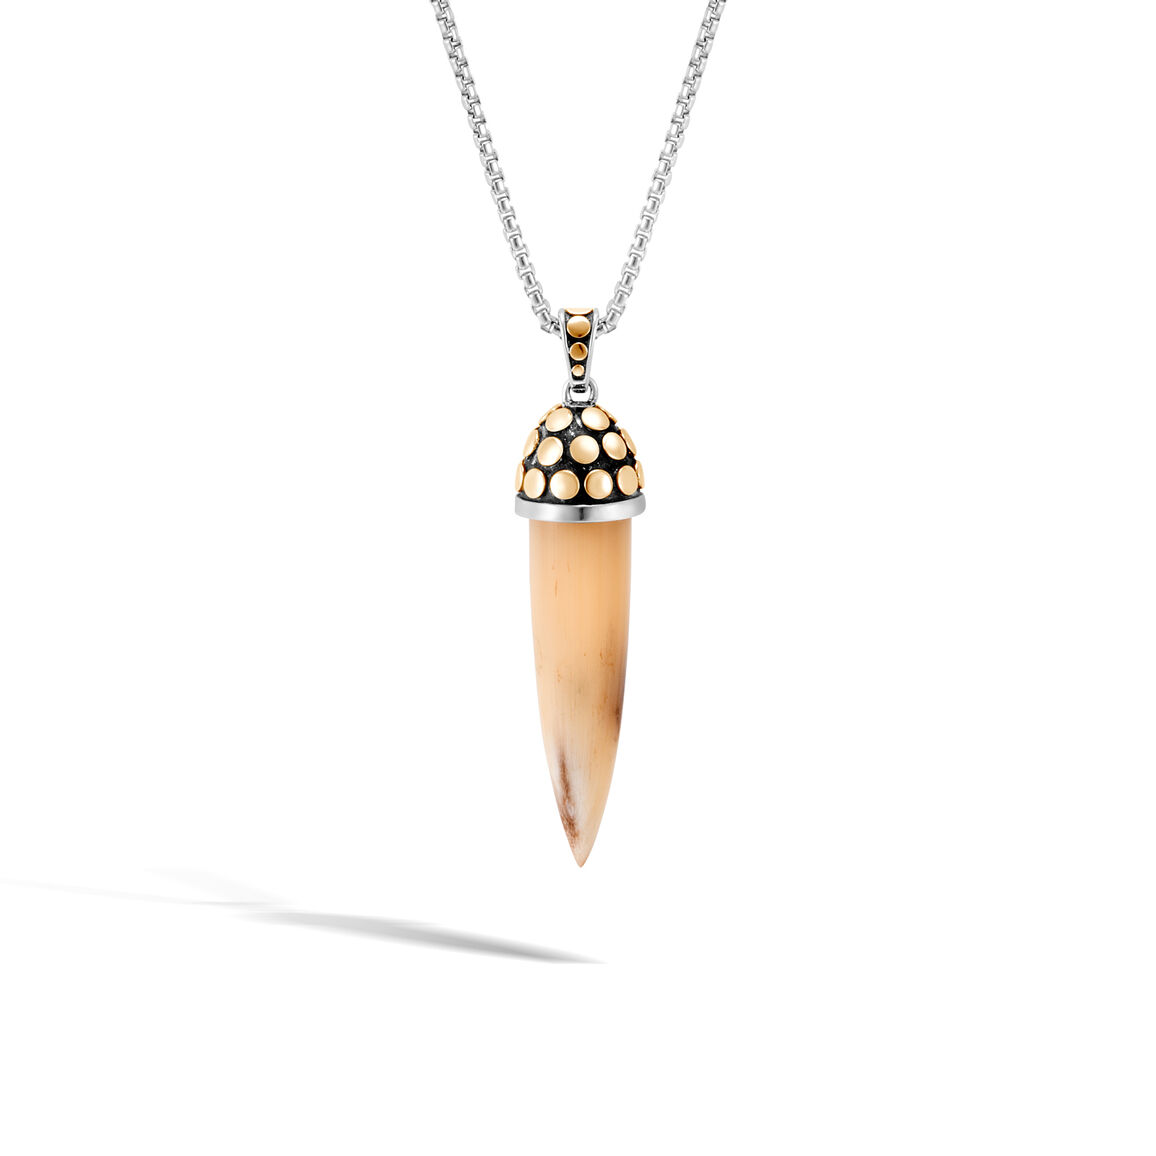 Dot Pendant Necklace in Silver, 18K Gold and Buffalo Horn